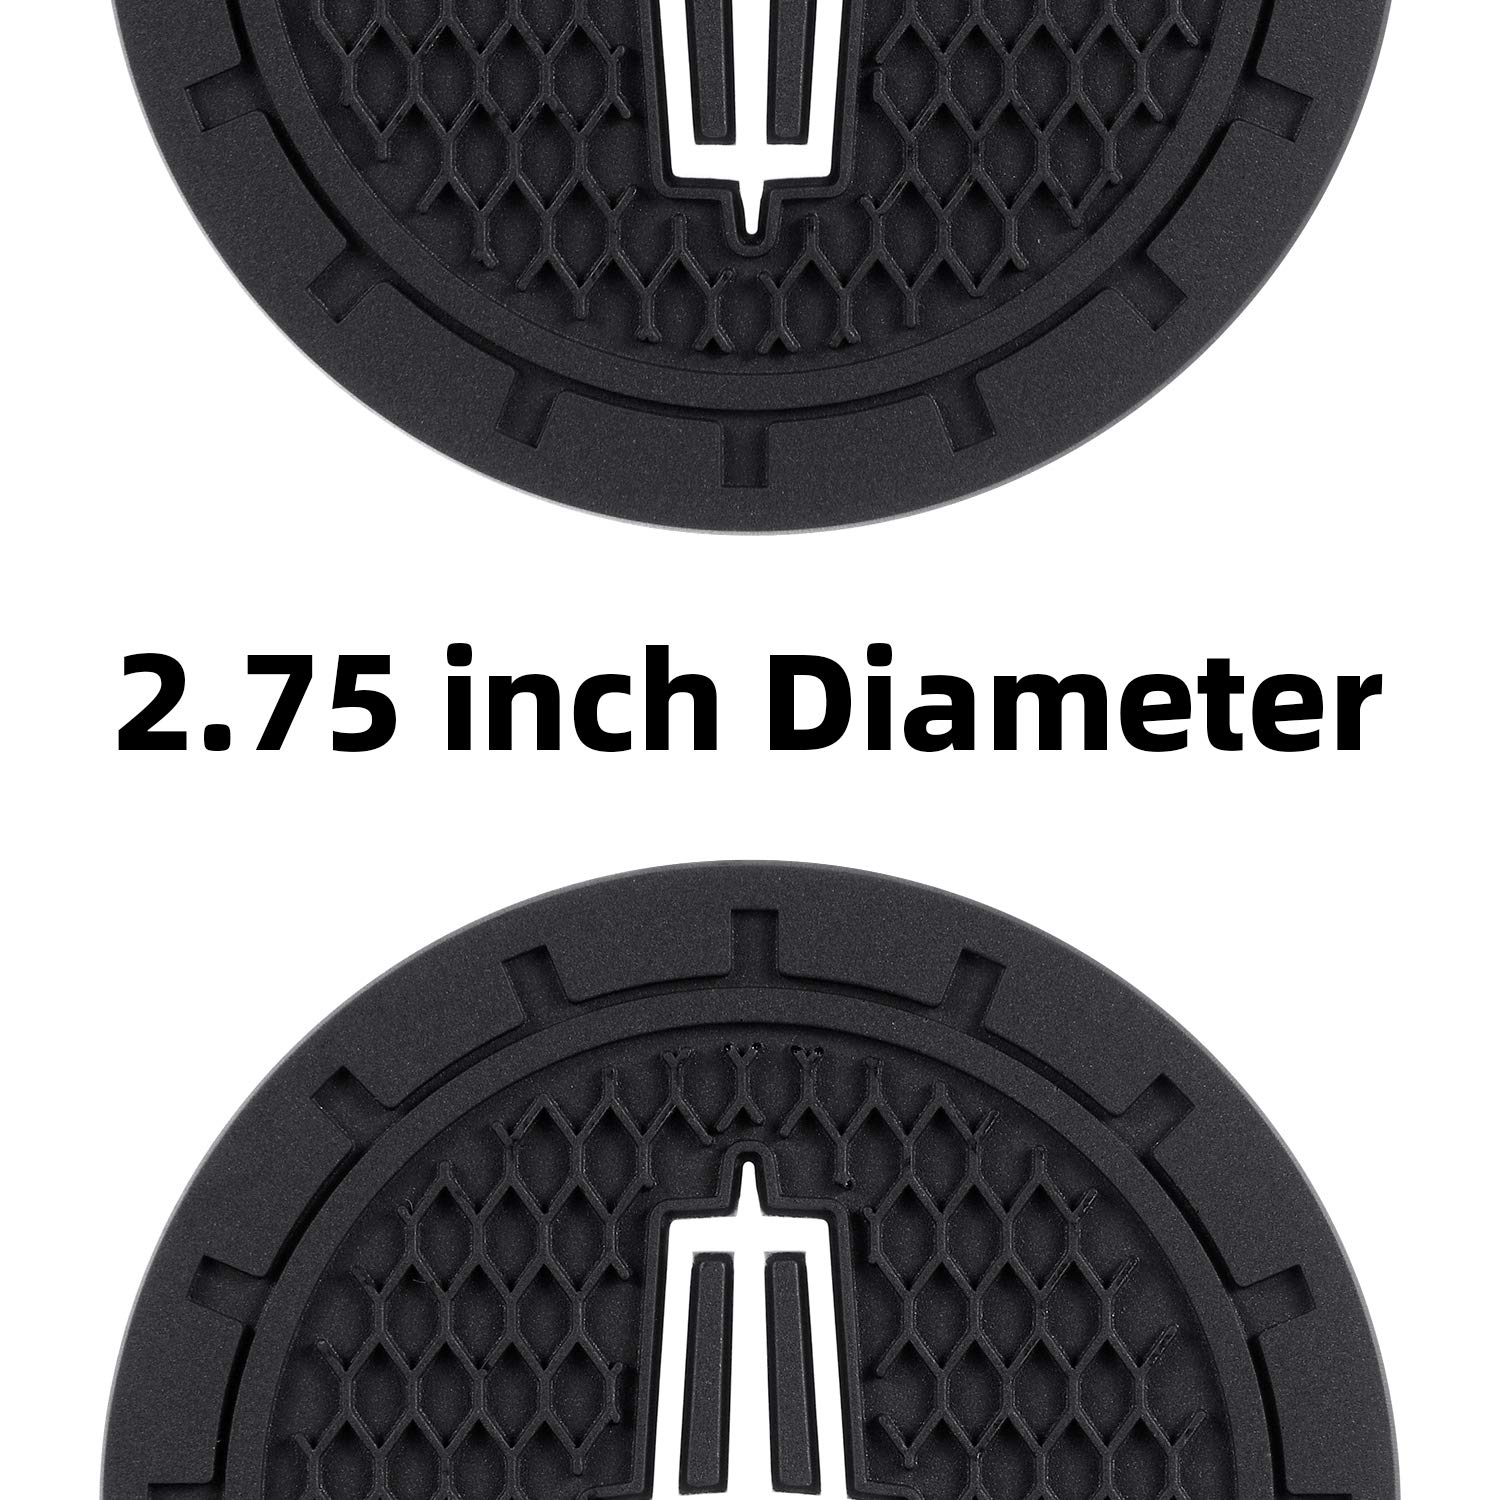 Set of 2, 2.75 Diameter Silicone Anti Slip Cup Mat for Lincoln MKC Nautilus Aviator Navigator MKZ Continental AOOOOP Car Interior Accessories for Lincoln Cup Holder Insert Coaster